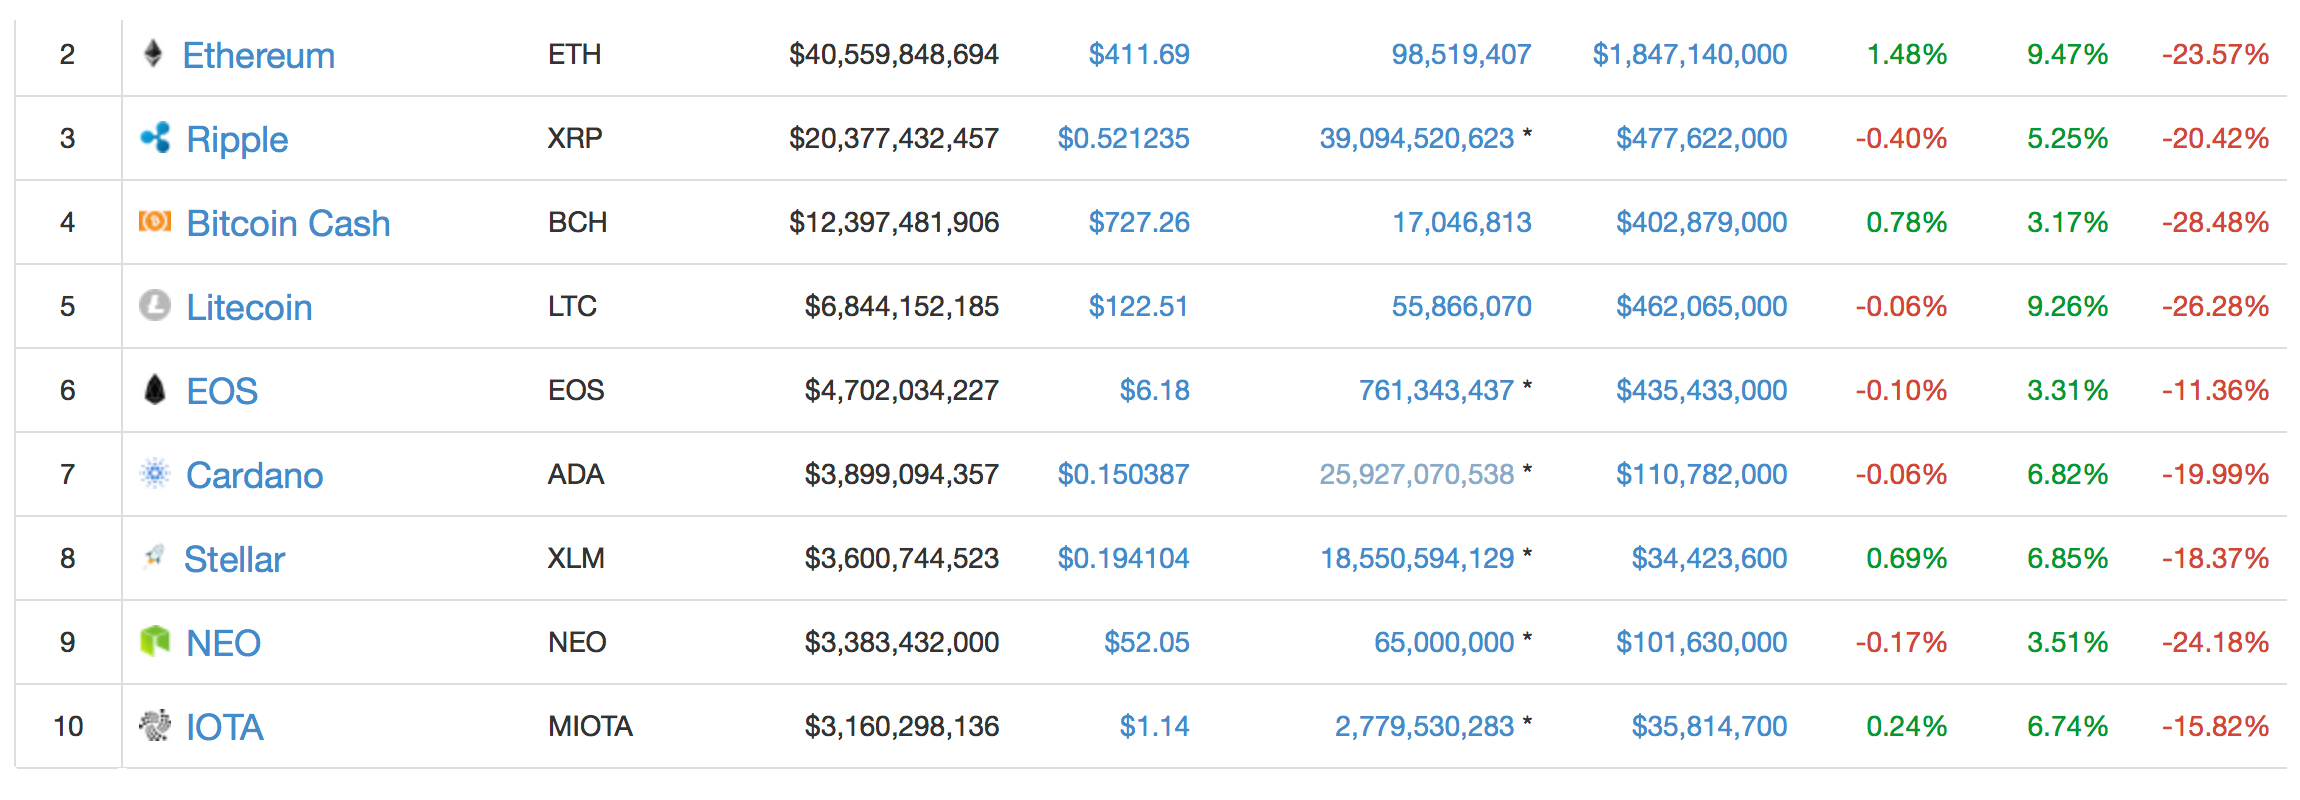 tenx cryptocurrency market cap